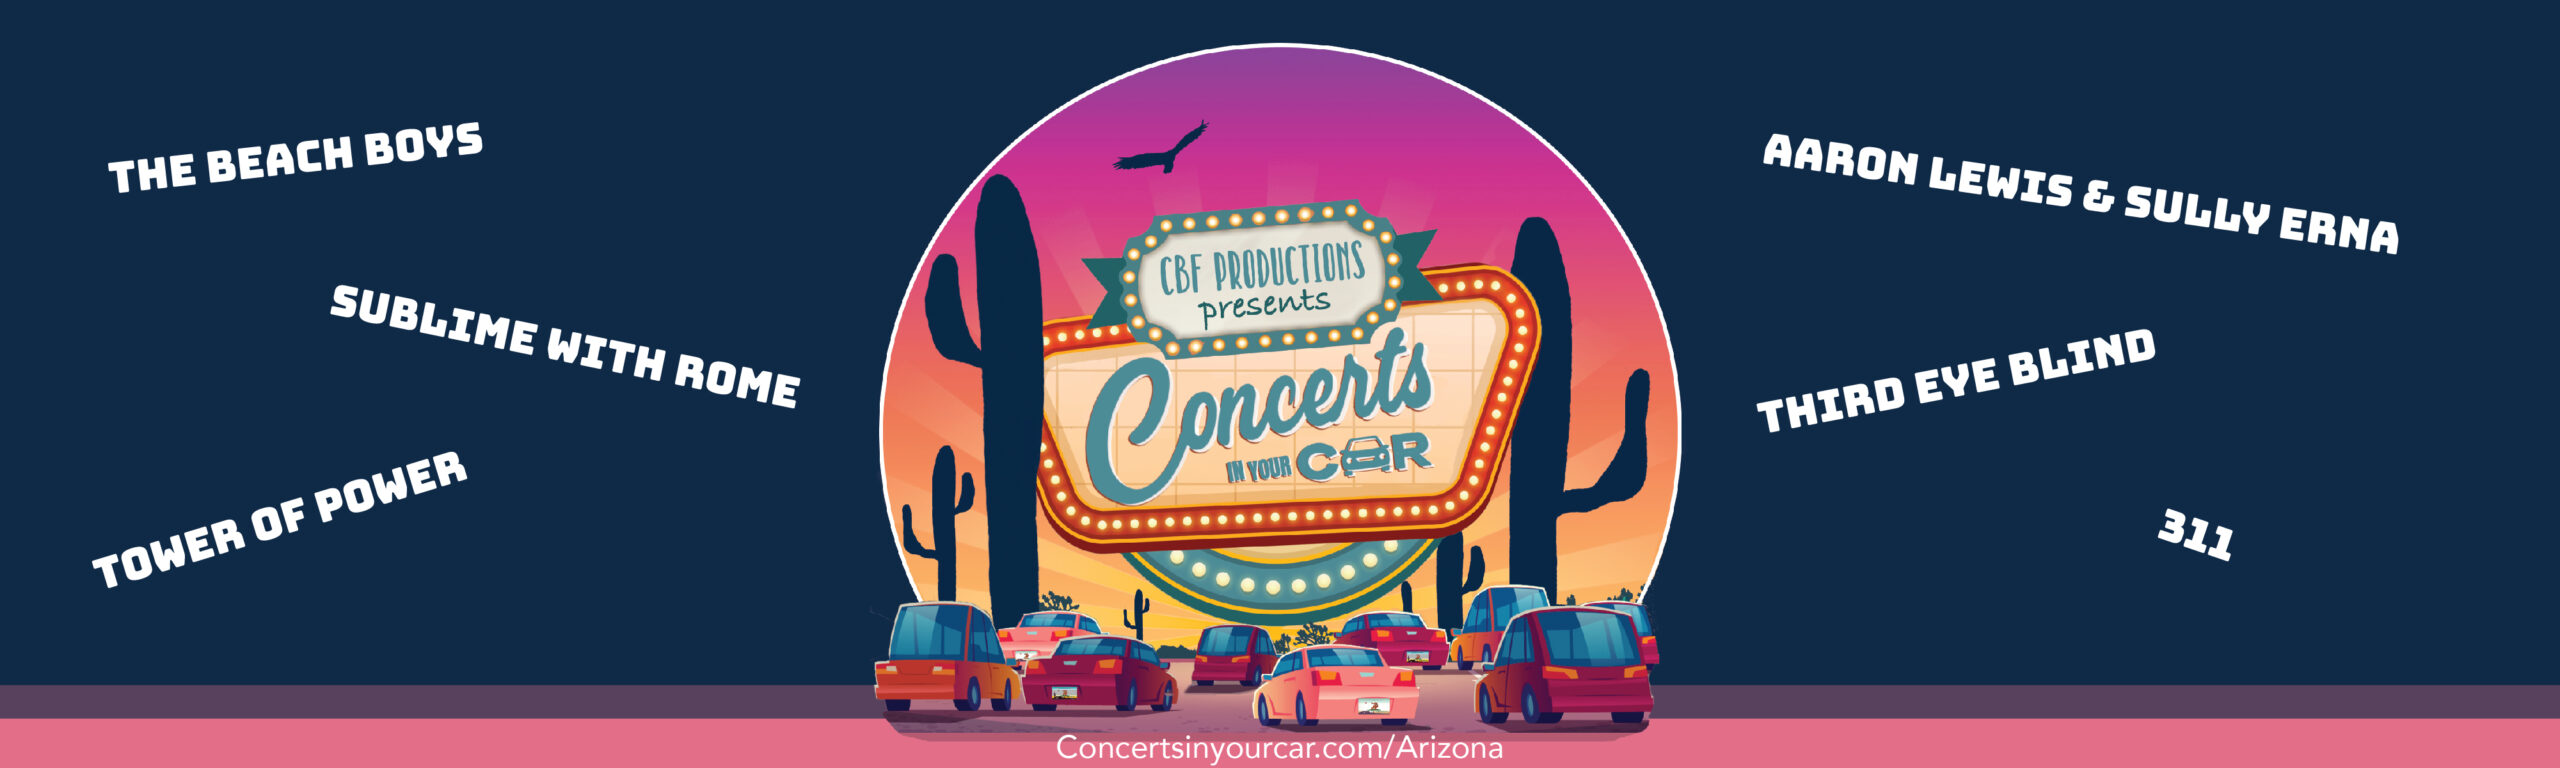 Concerts In your Car Landing Page